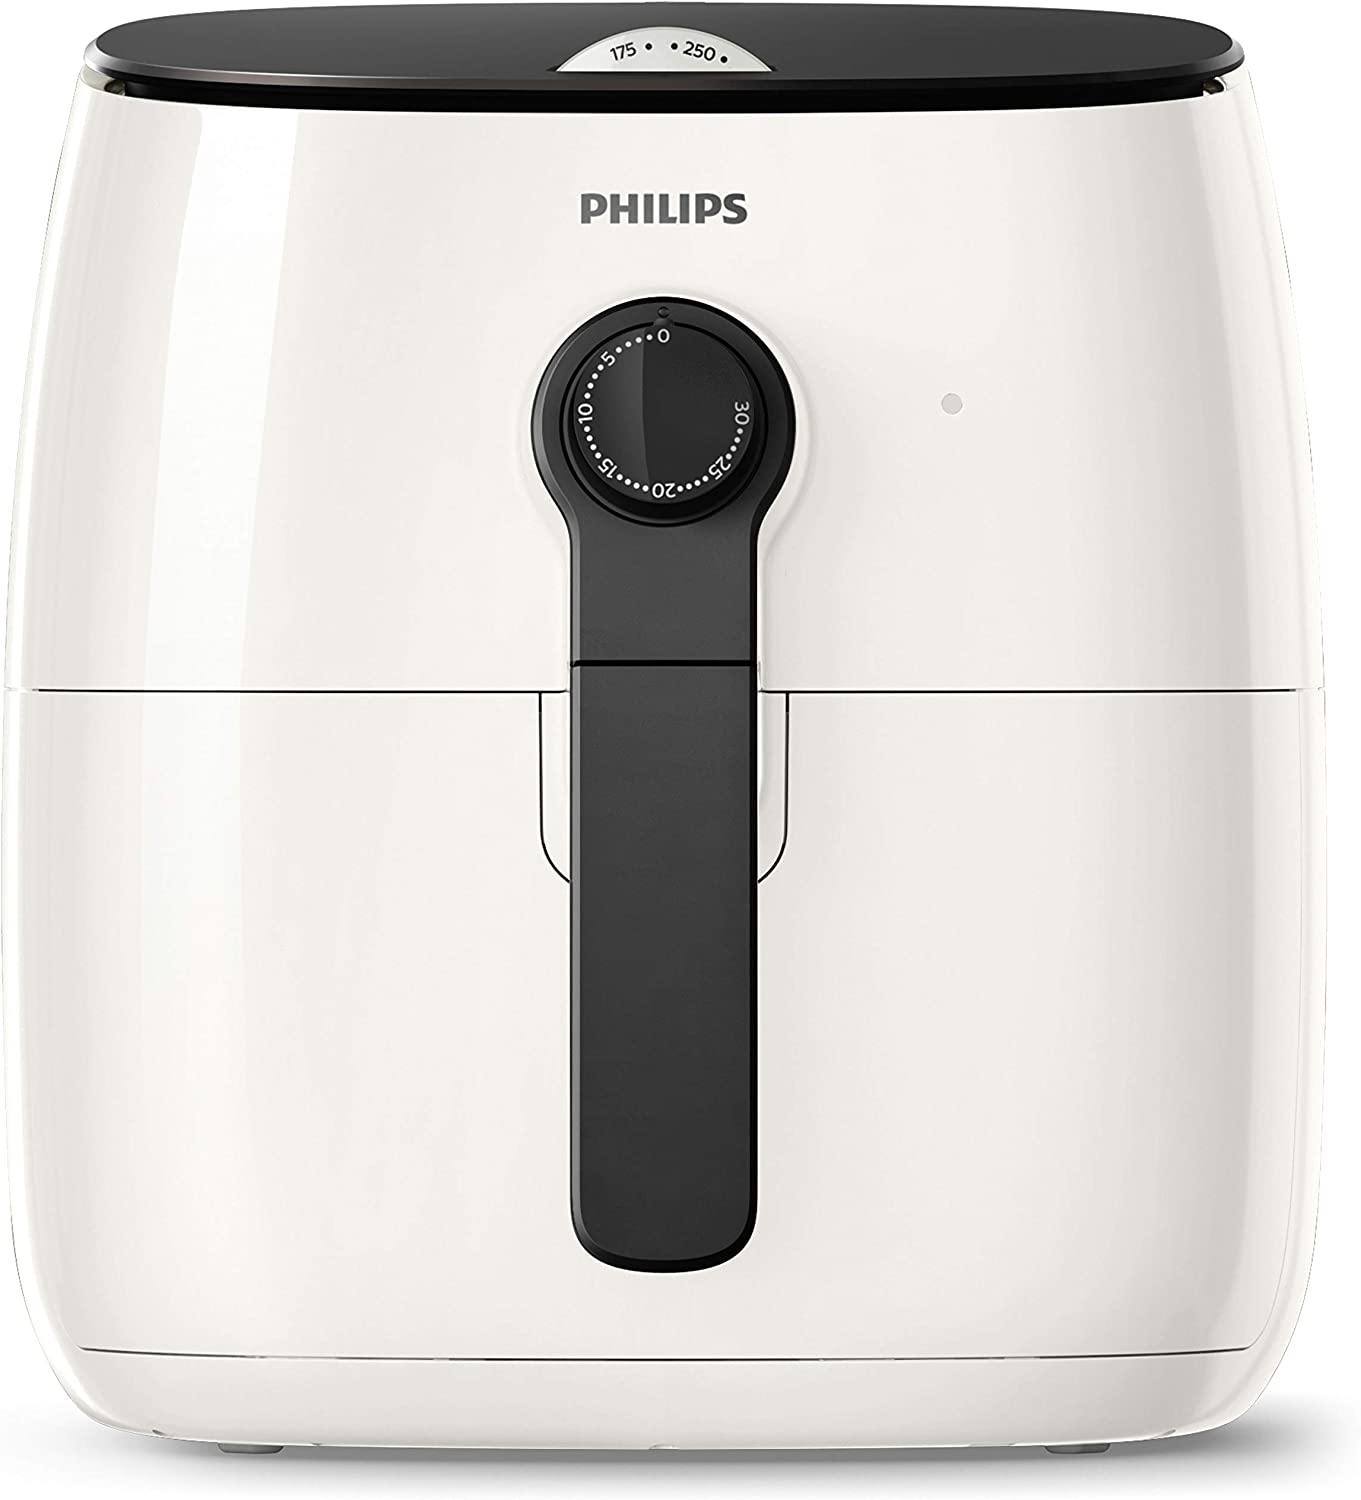 Philips Compact Air Fryer